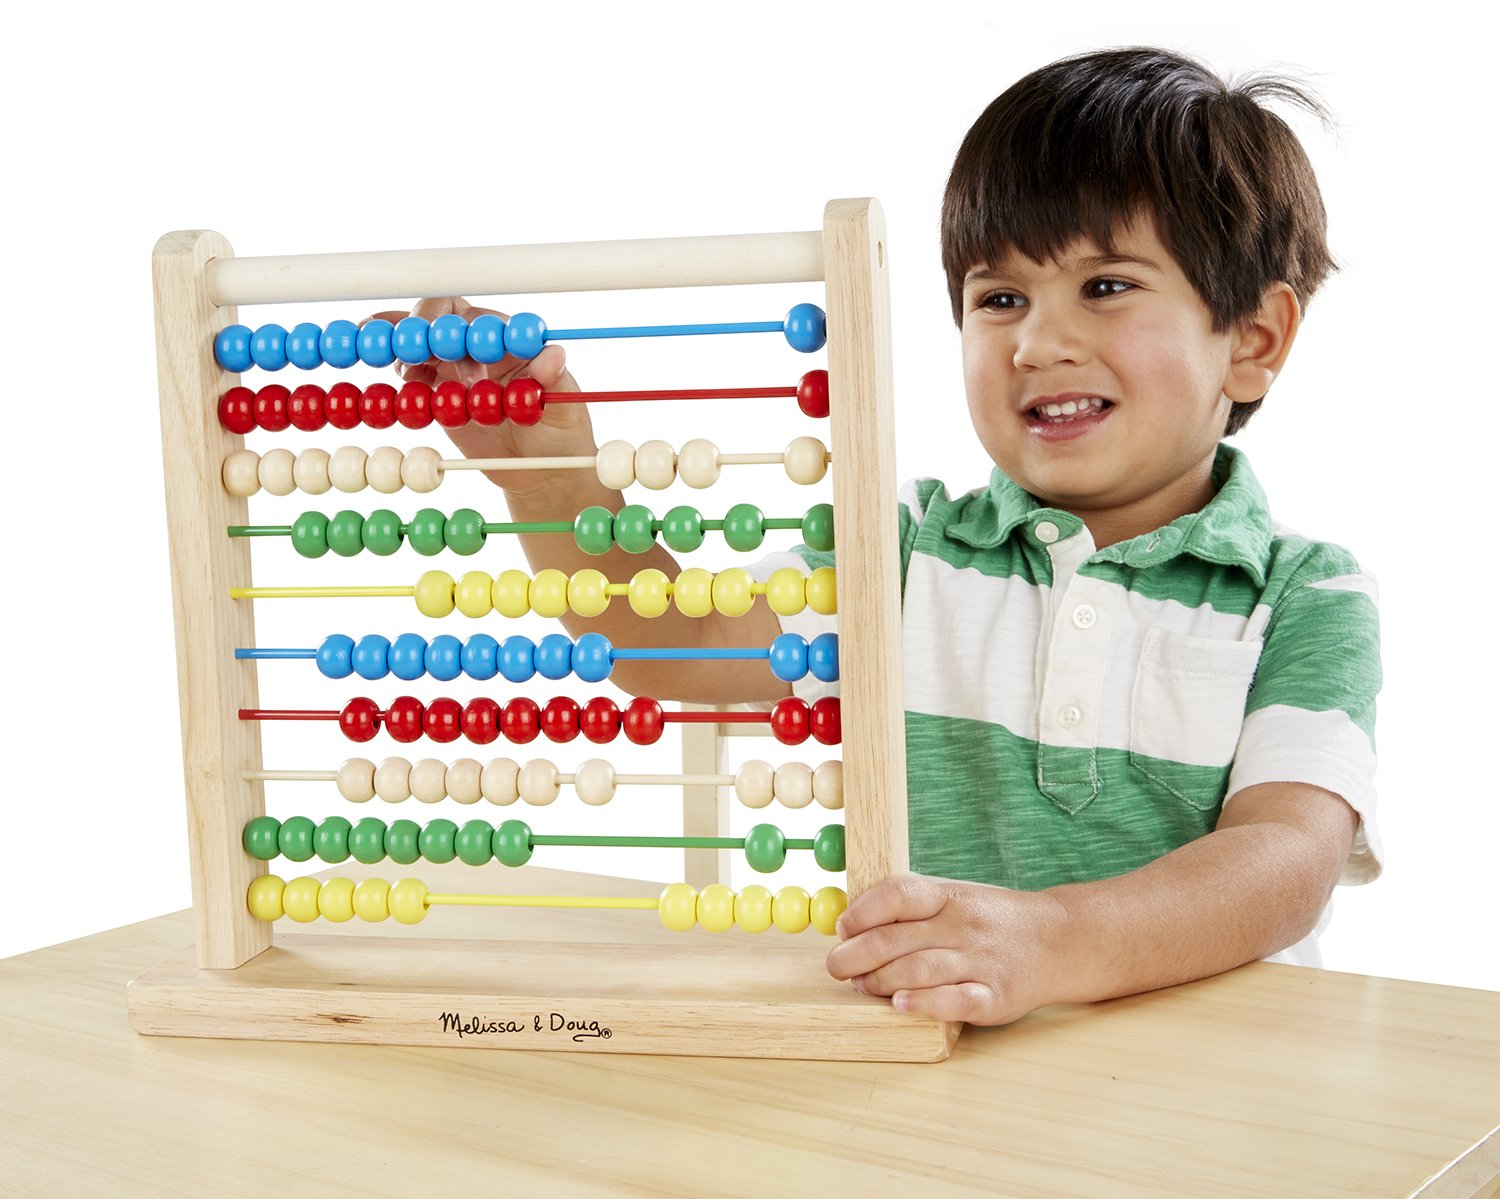 Amazon.com: Melissa & Doug Abacus - Classic Wooden Educational ...